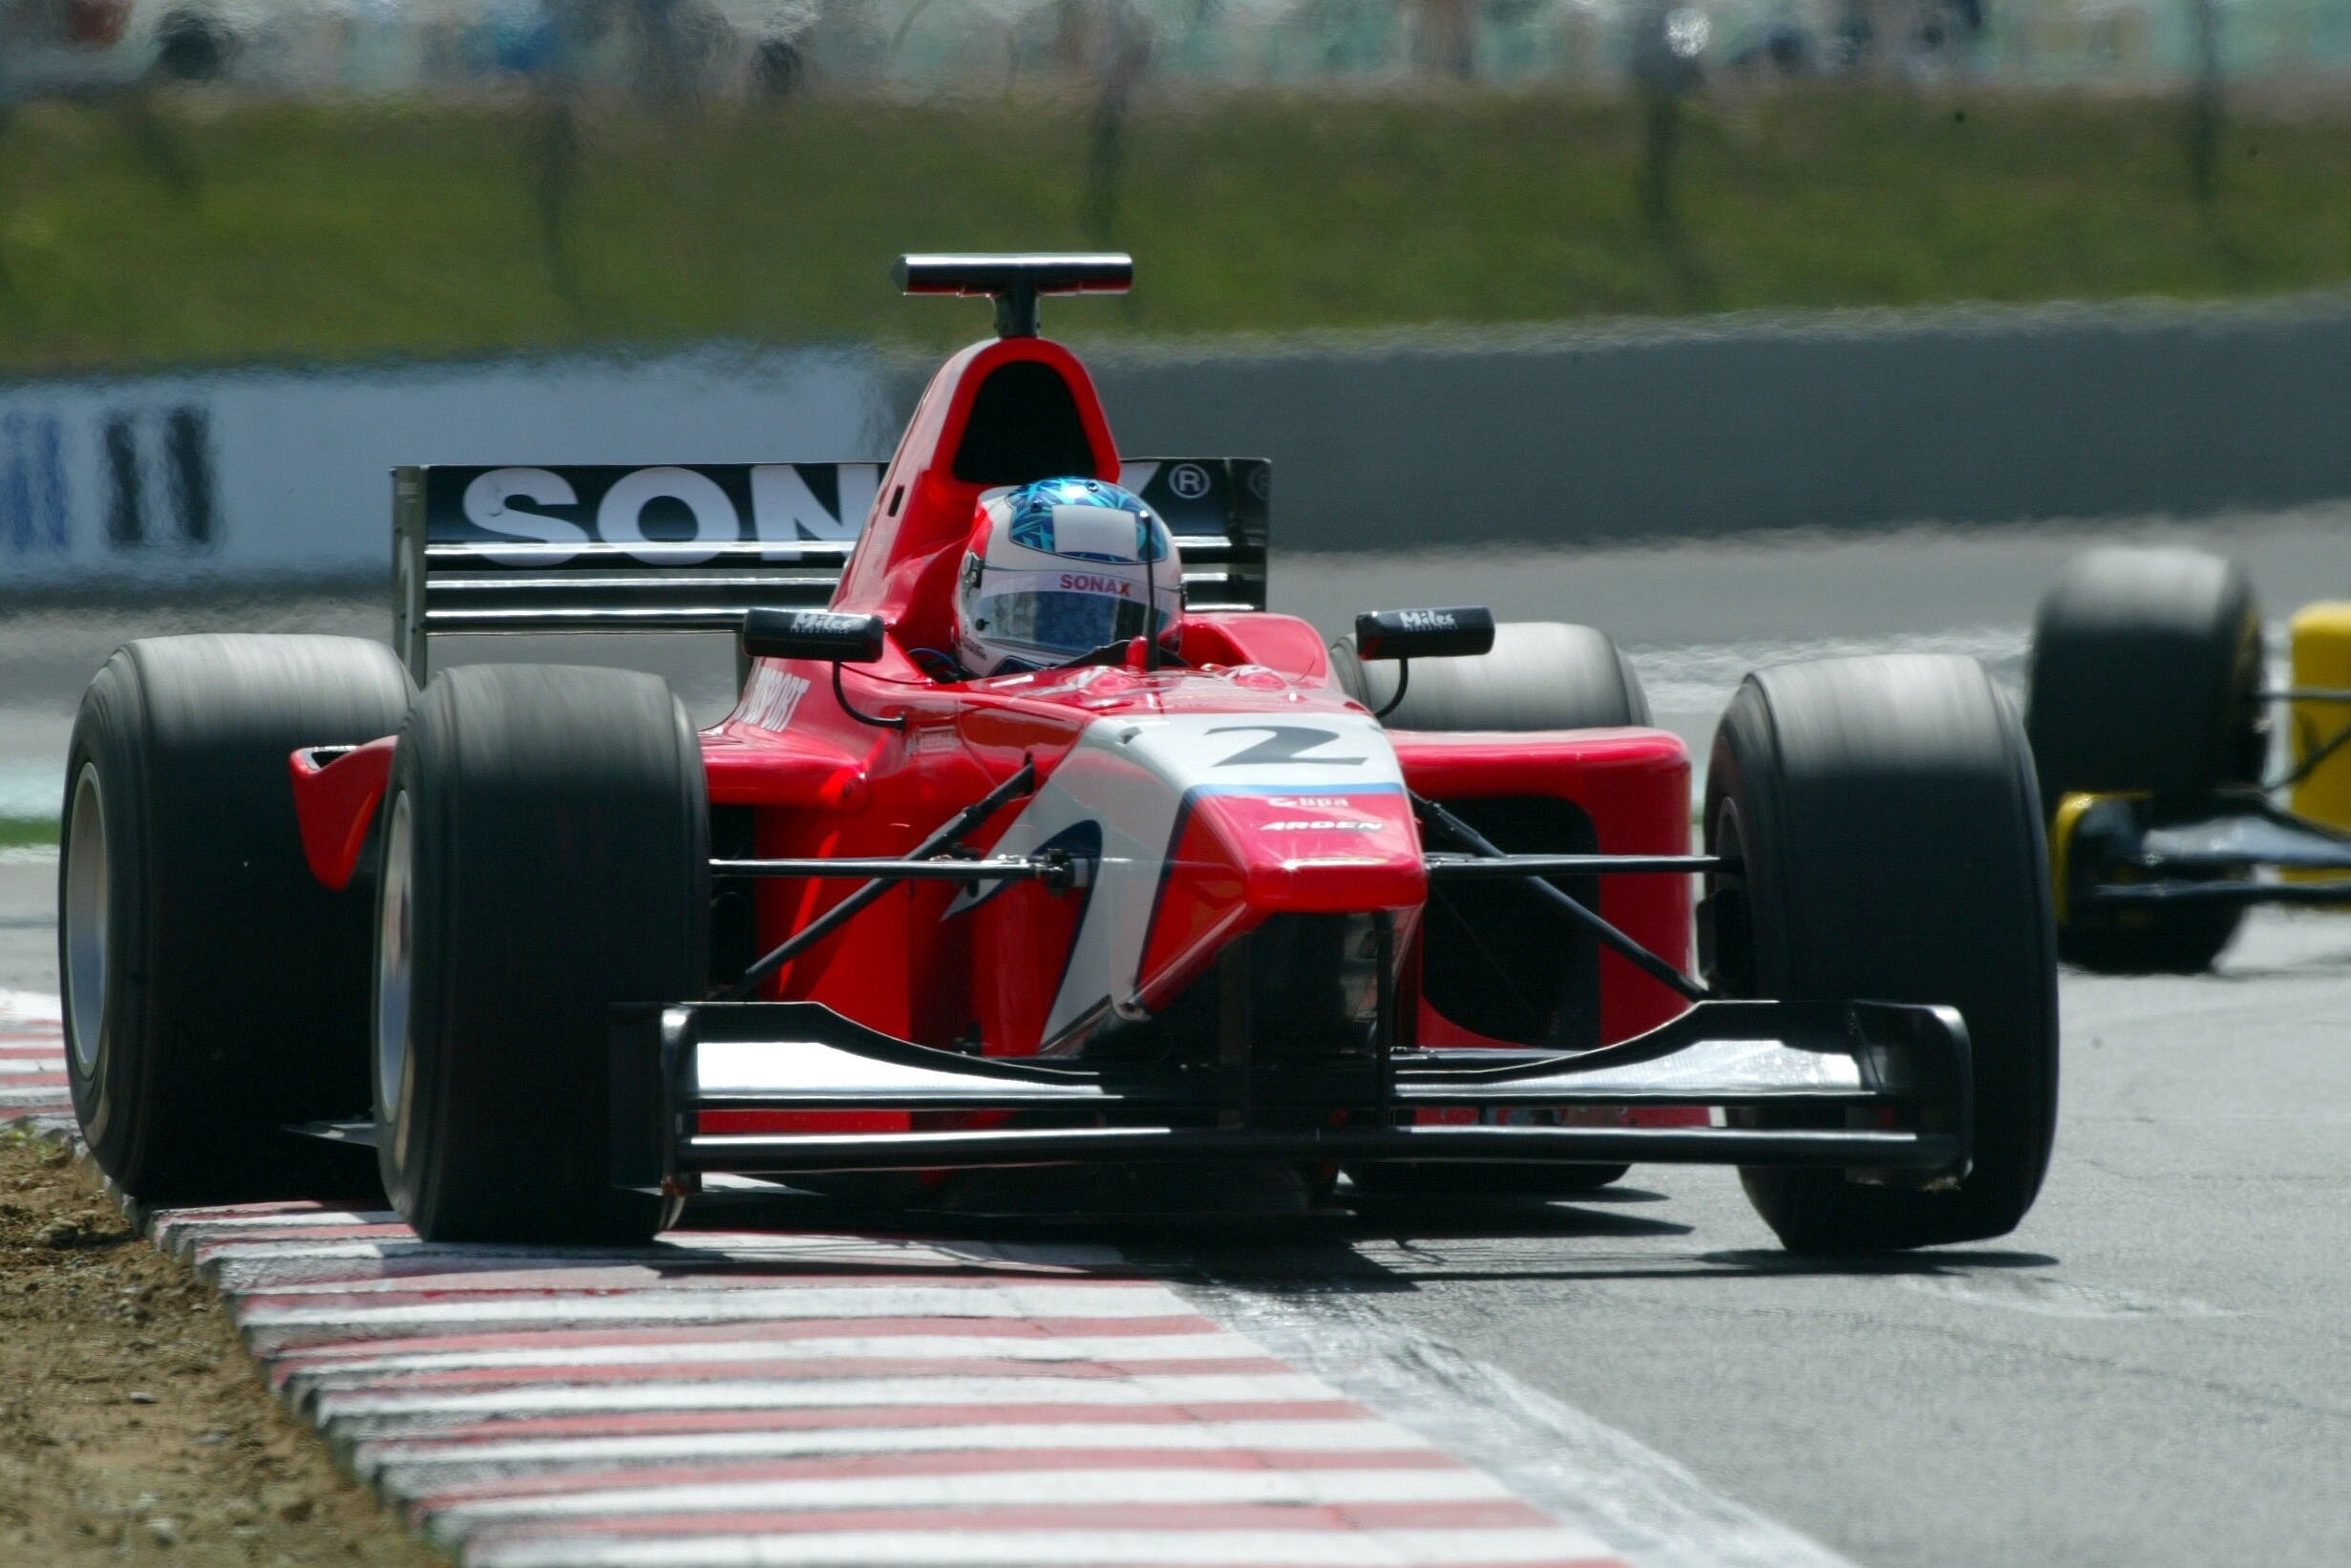 Townsend Bell, 2003 F3000 Magny-Cours